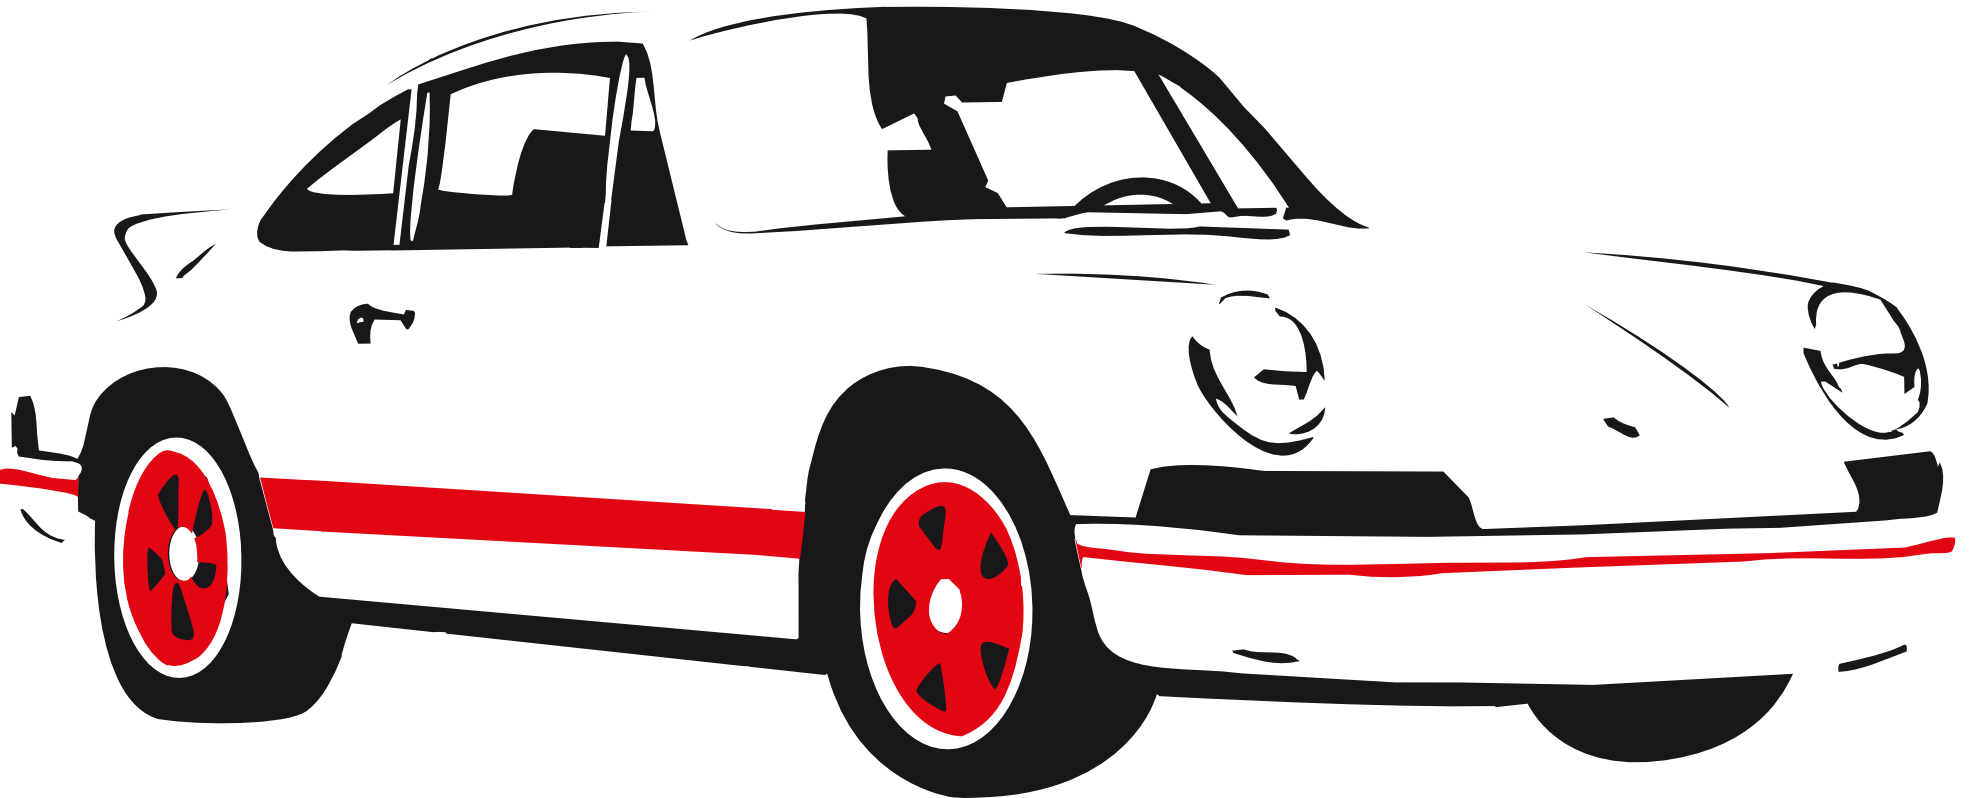 1969x798 Image Of 39 Car Clipart Black And White Images